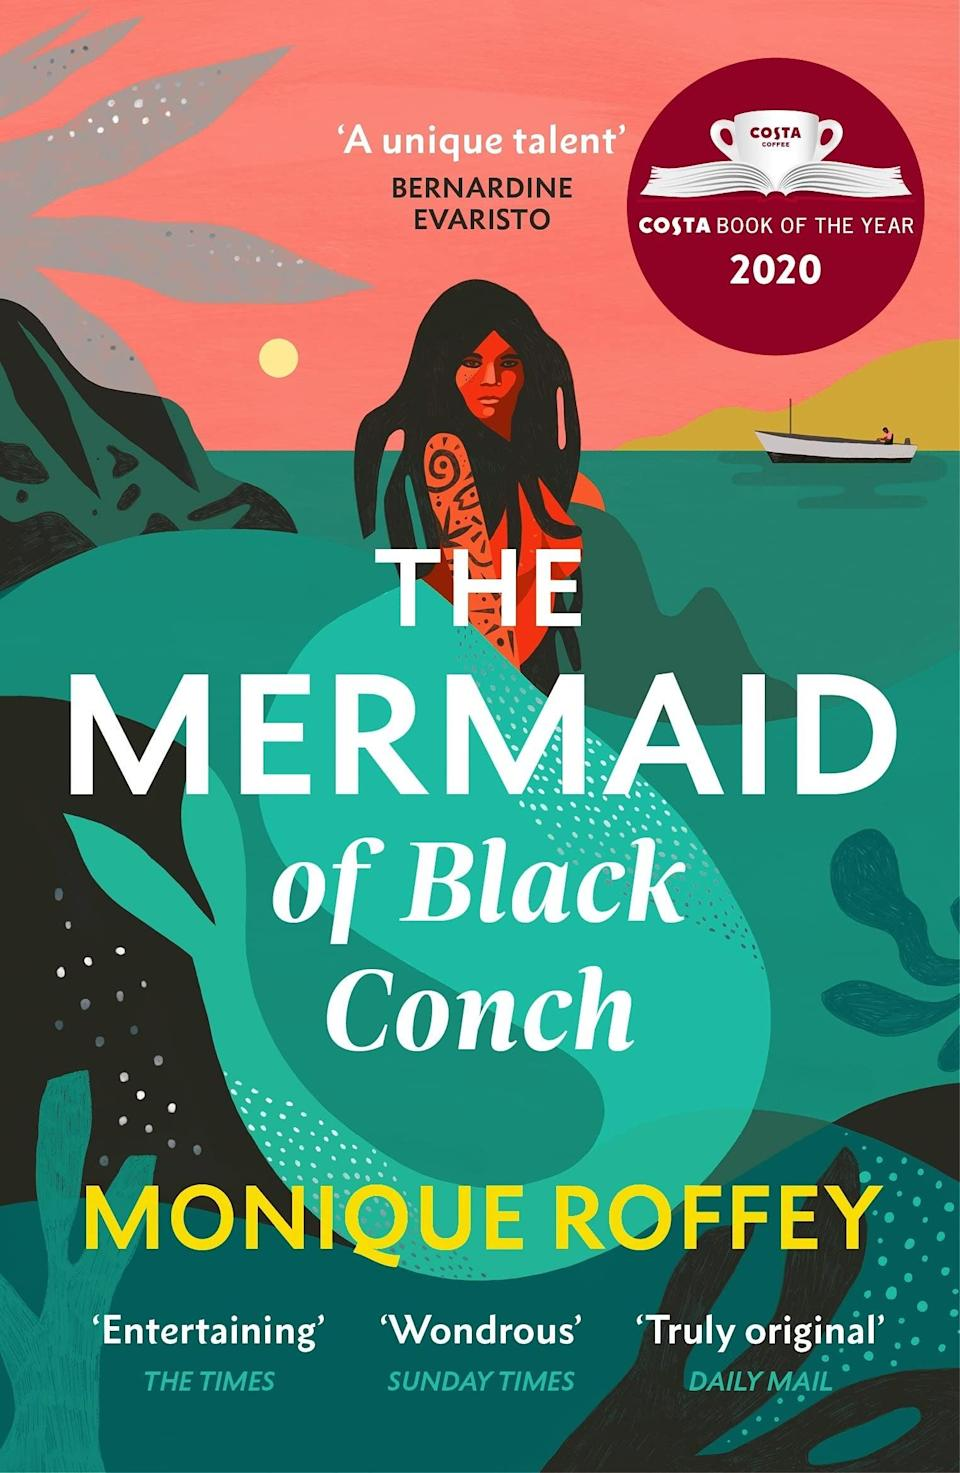 """At a time when our summer plans mostly involve things close to home, this story set on an imaginary Caribbean island is the perfect escapist read. <br><br>Set in 1976, the story takes place in a tiny village on the isle of Black Conch. David, a fisherman sits singing on the shore but his heavenly singing voice attracts the attention of someone he never expected. Bubbling up from the ocean's surface comes Aycayia, a young woman cursed by jealous wives to live as a mermaid forever. Having swum the local seas for many years, Aycayia and David begin an unlikely friendship. For those in search of a modern-day <em>Splash</em>, this story of man-meets-mermaid ticks all the right boxes.<br><br><strong>Monique Roffey</strong> The Mermaid of Black Conch, $, available at <a href=""""https://www.amazon.co.uk/Mermaid-Black-Conch-Winner-Costa/dp/1529115493/ref=sr_1_1_sspa?"""" rel=""""nofollow noopener"""" target=""""_blank"""" data-ylk=""""slk:Amazon"""" class=""""link rapid-noclick-resp"""">Amazon</a>"""